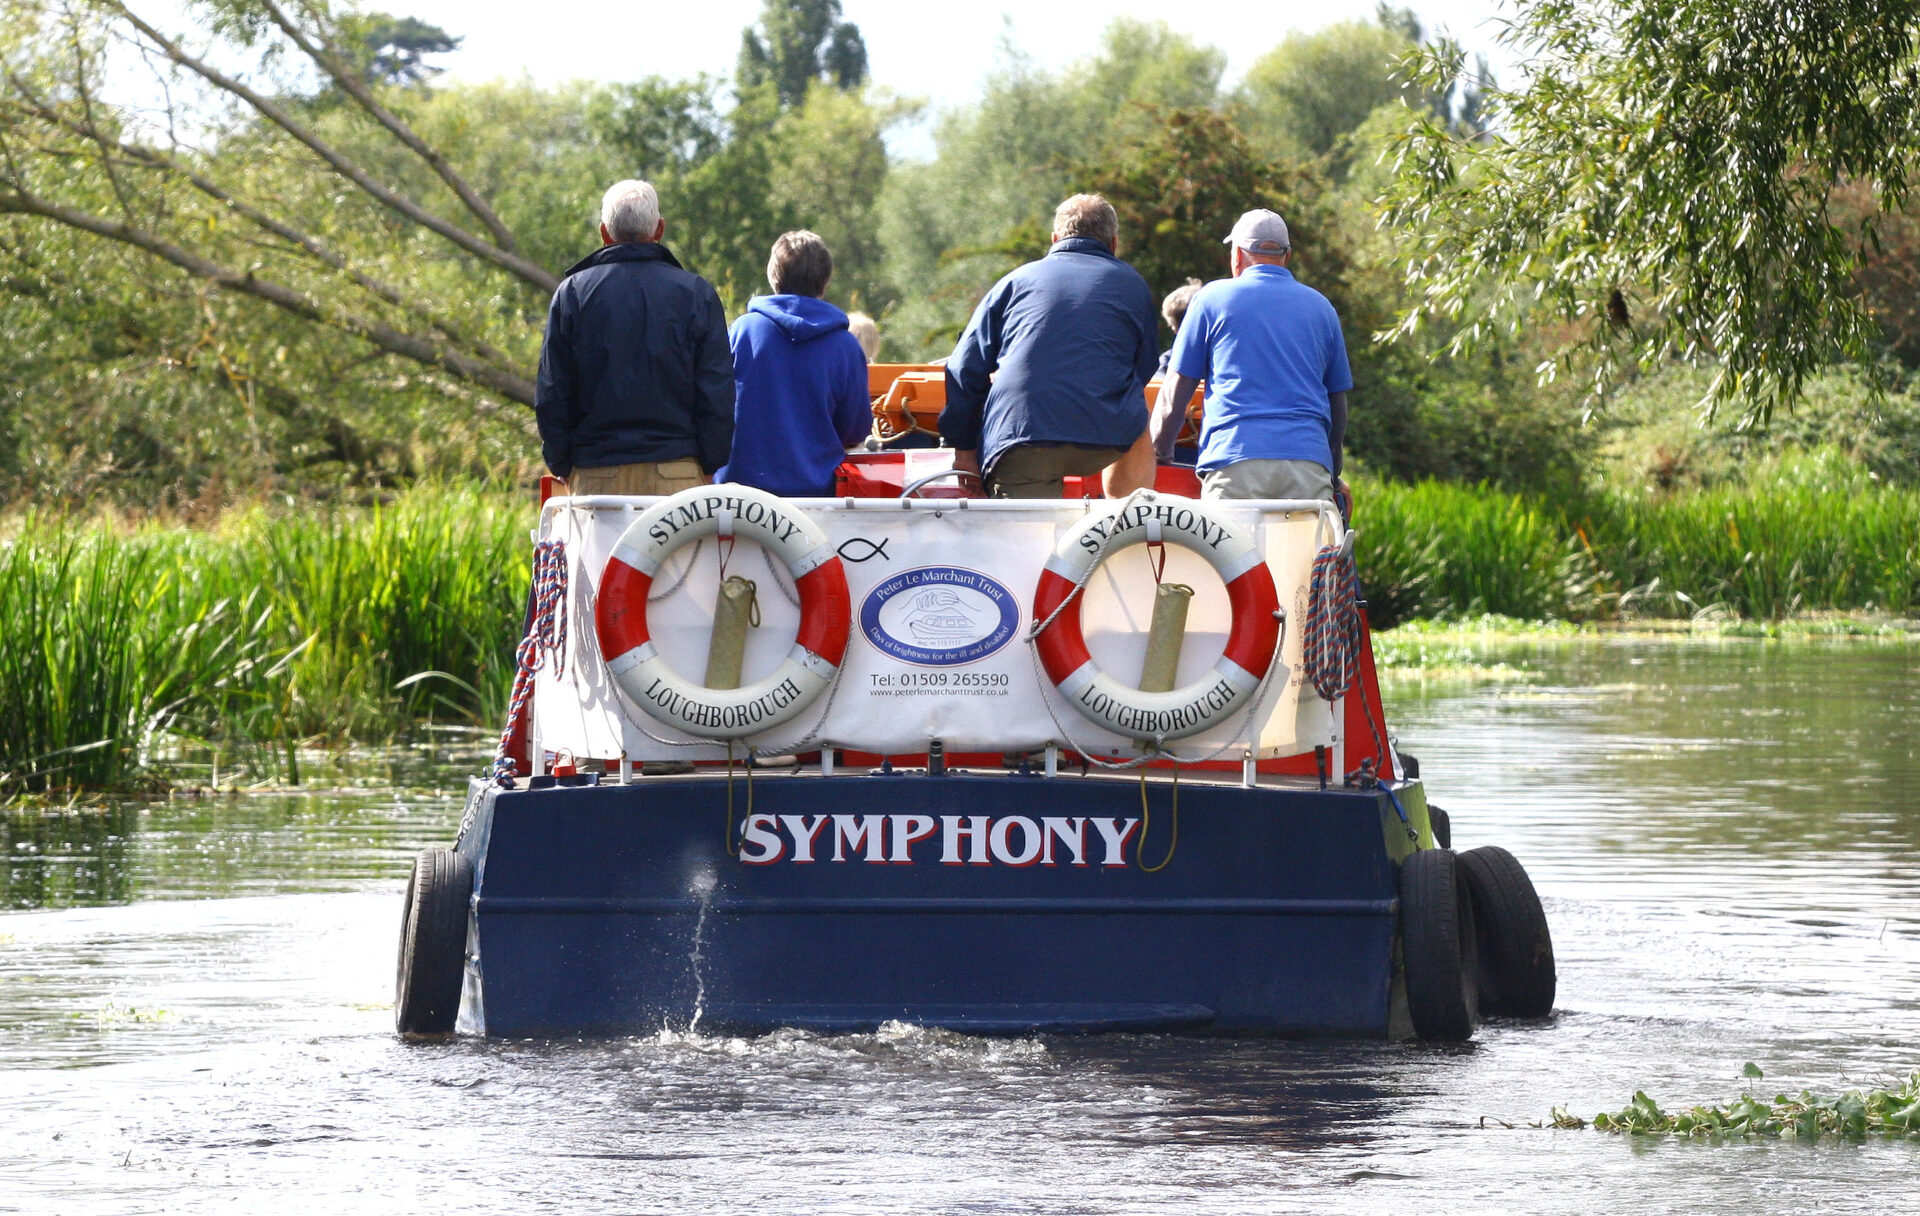 This is a charity boat on the River Soar in Leicester.